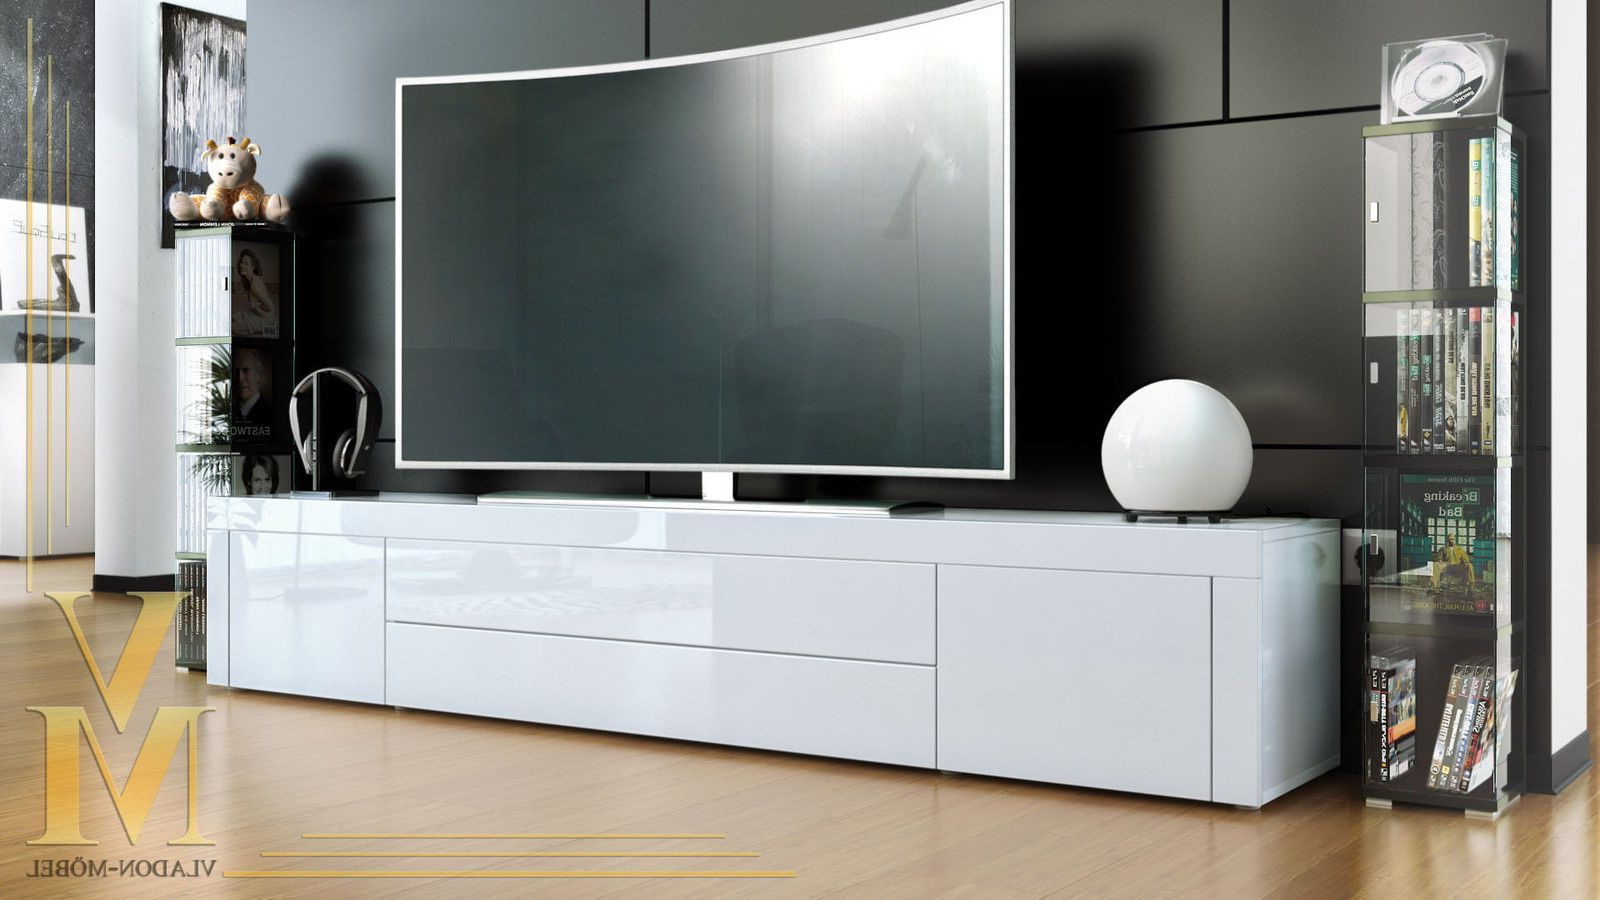 Tv Stand Board Unit Lowboard Cabinet La Paz White – High With Regard To High Glass Modern Entertainment Tv Stands For Living Room Bedroom (View 7 of 20)